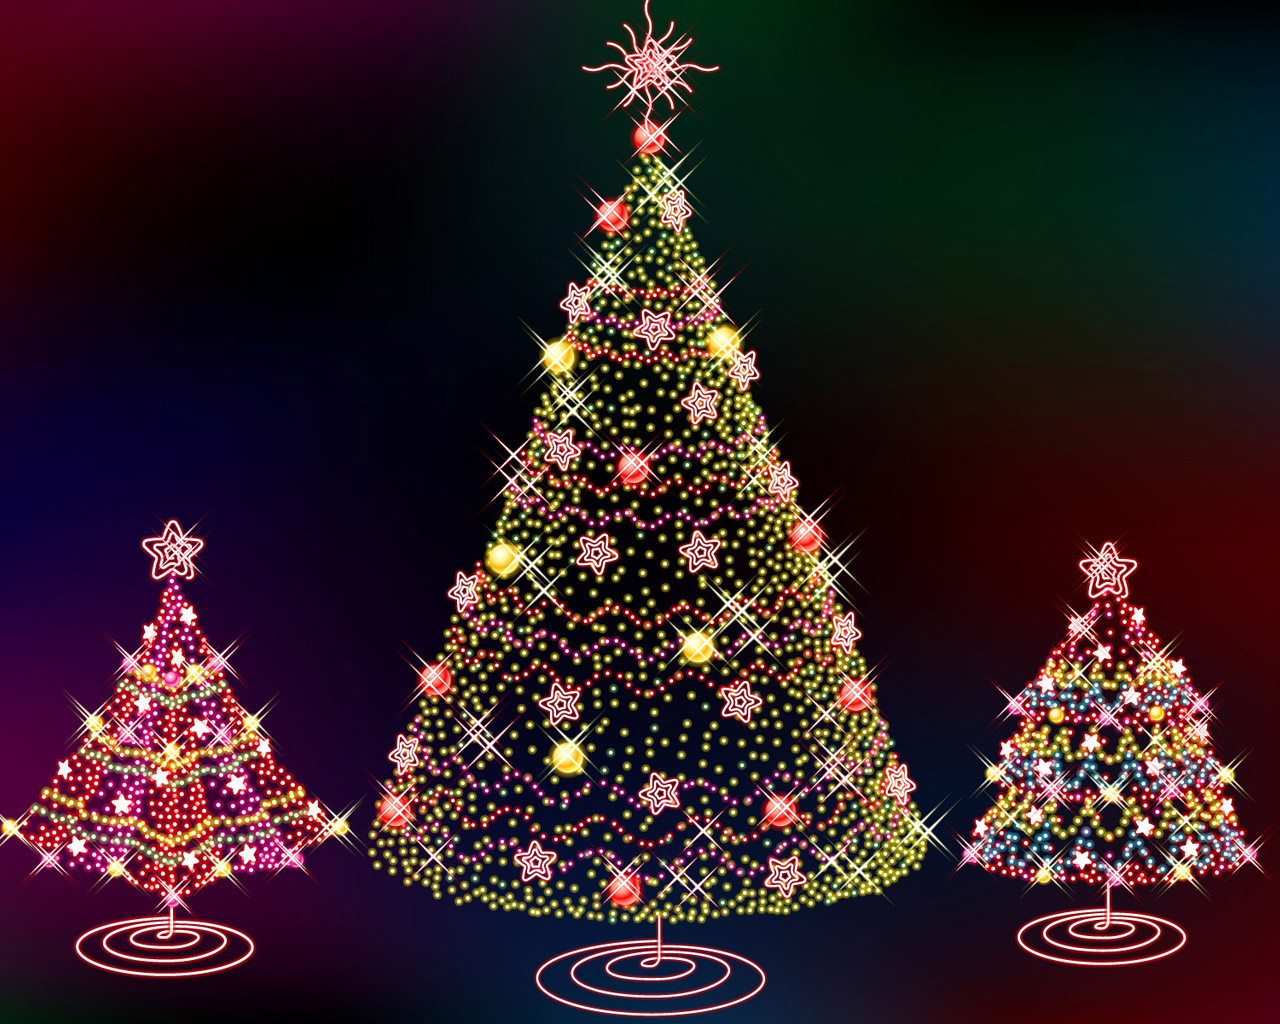 Christmas Wallpaper | 3D Wallpaper | Nature Wallpaper | Free Download Wallpaper